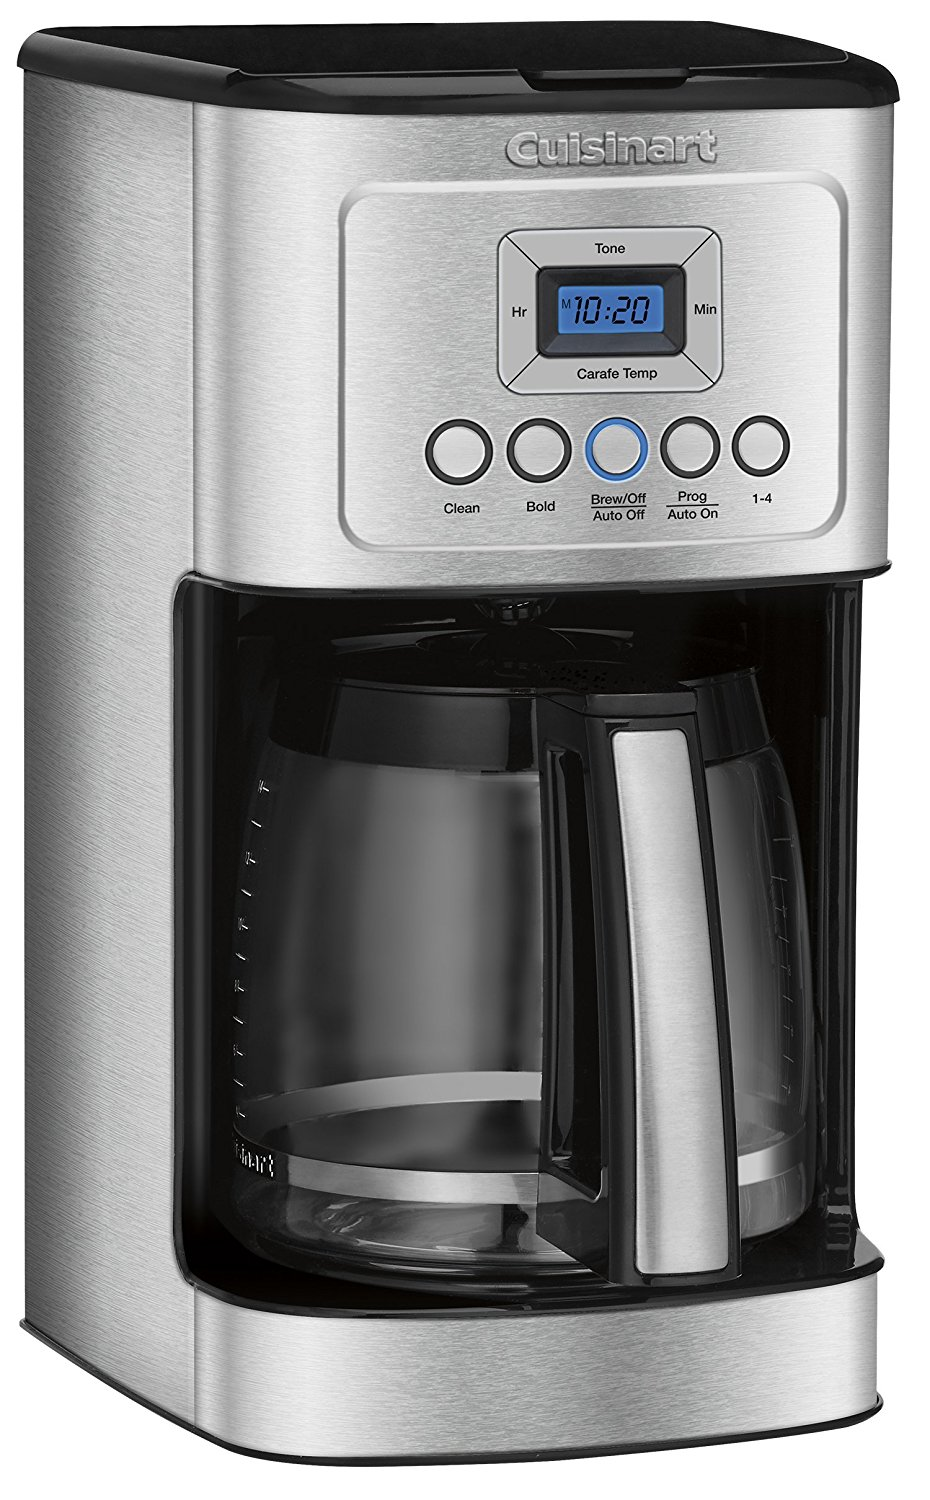 Cuisinart Coffee Maker Internal Carafe : Cuisinart DCC-3200 14-Cup Glass Carafe with Stainless Steel Handle Programmable Coffeemaker ...